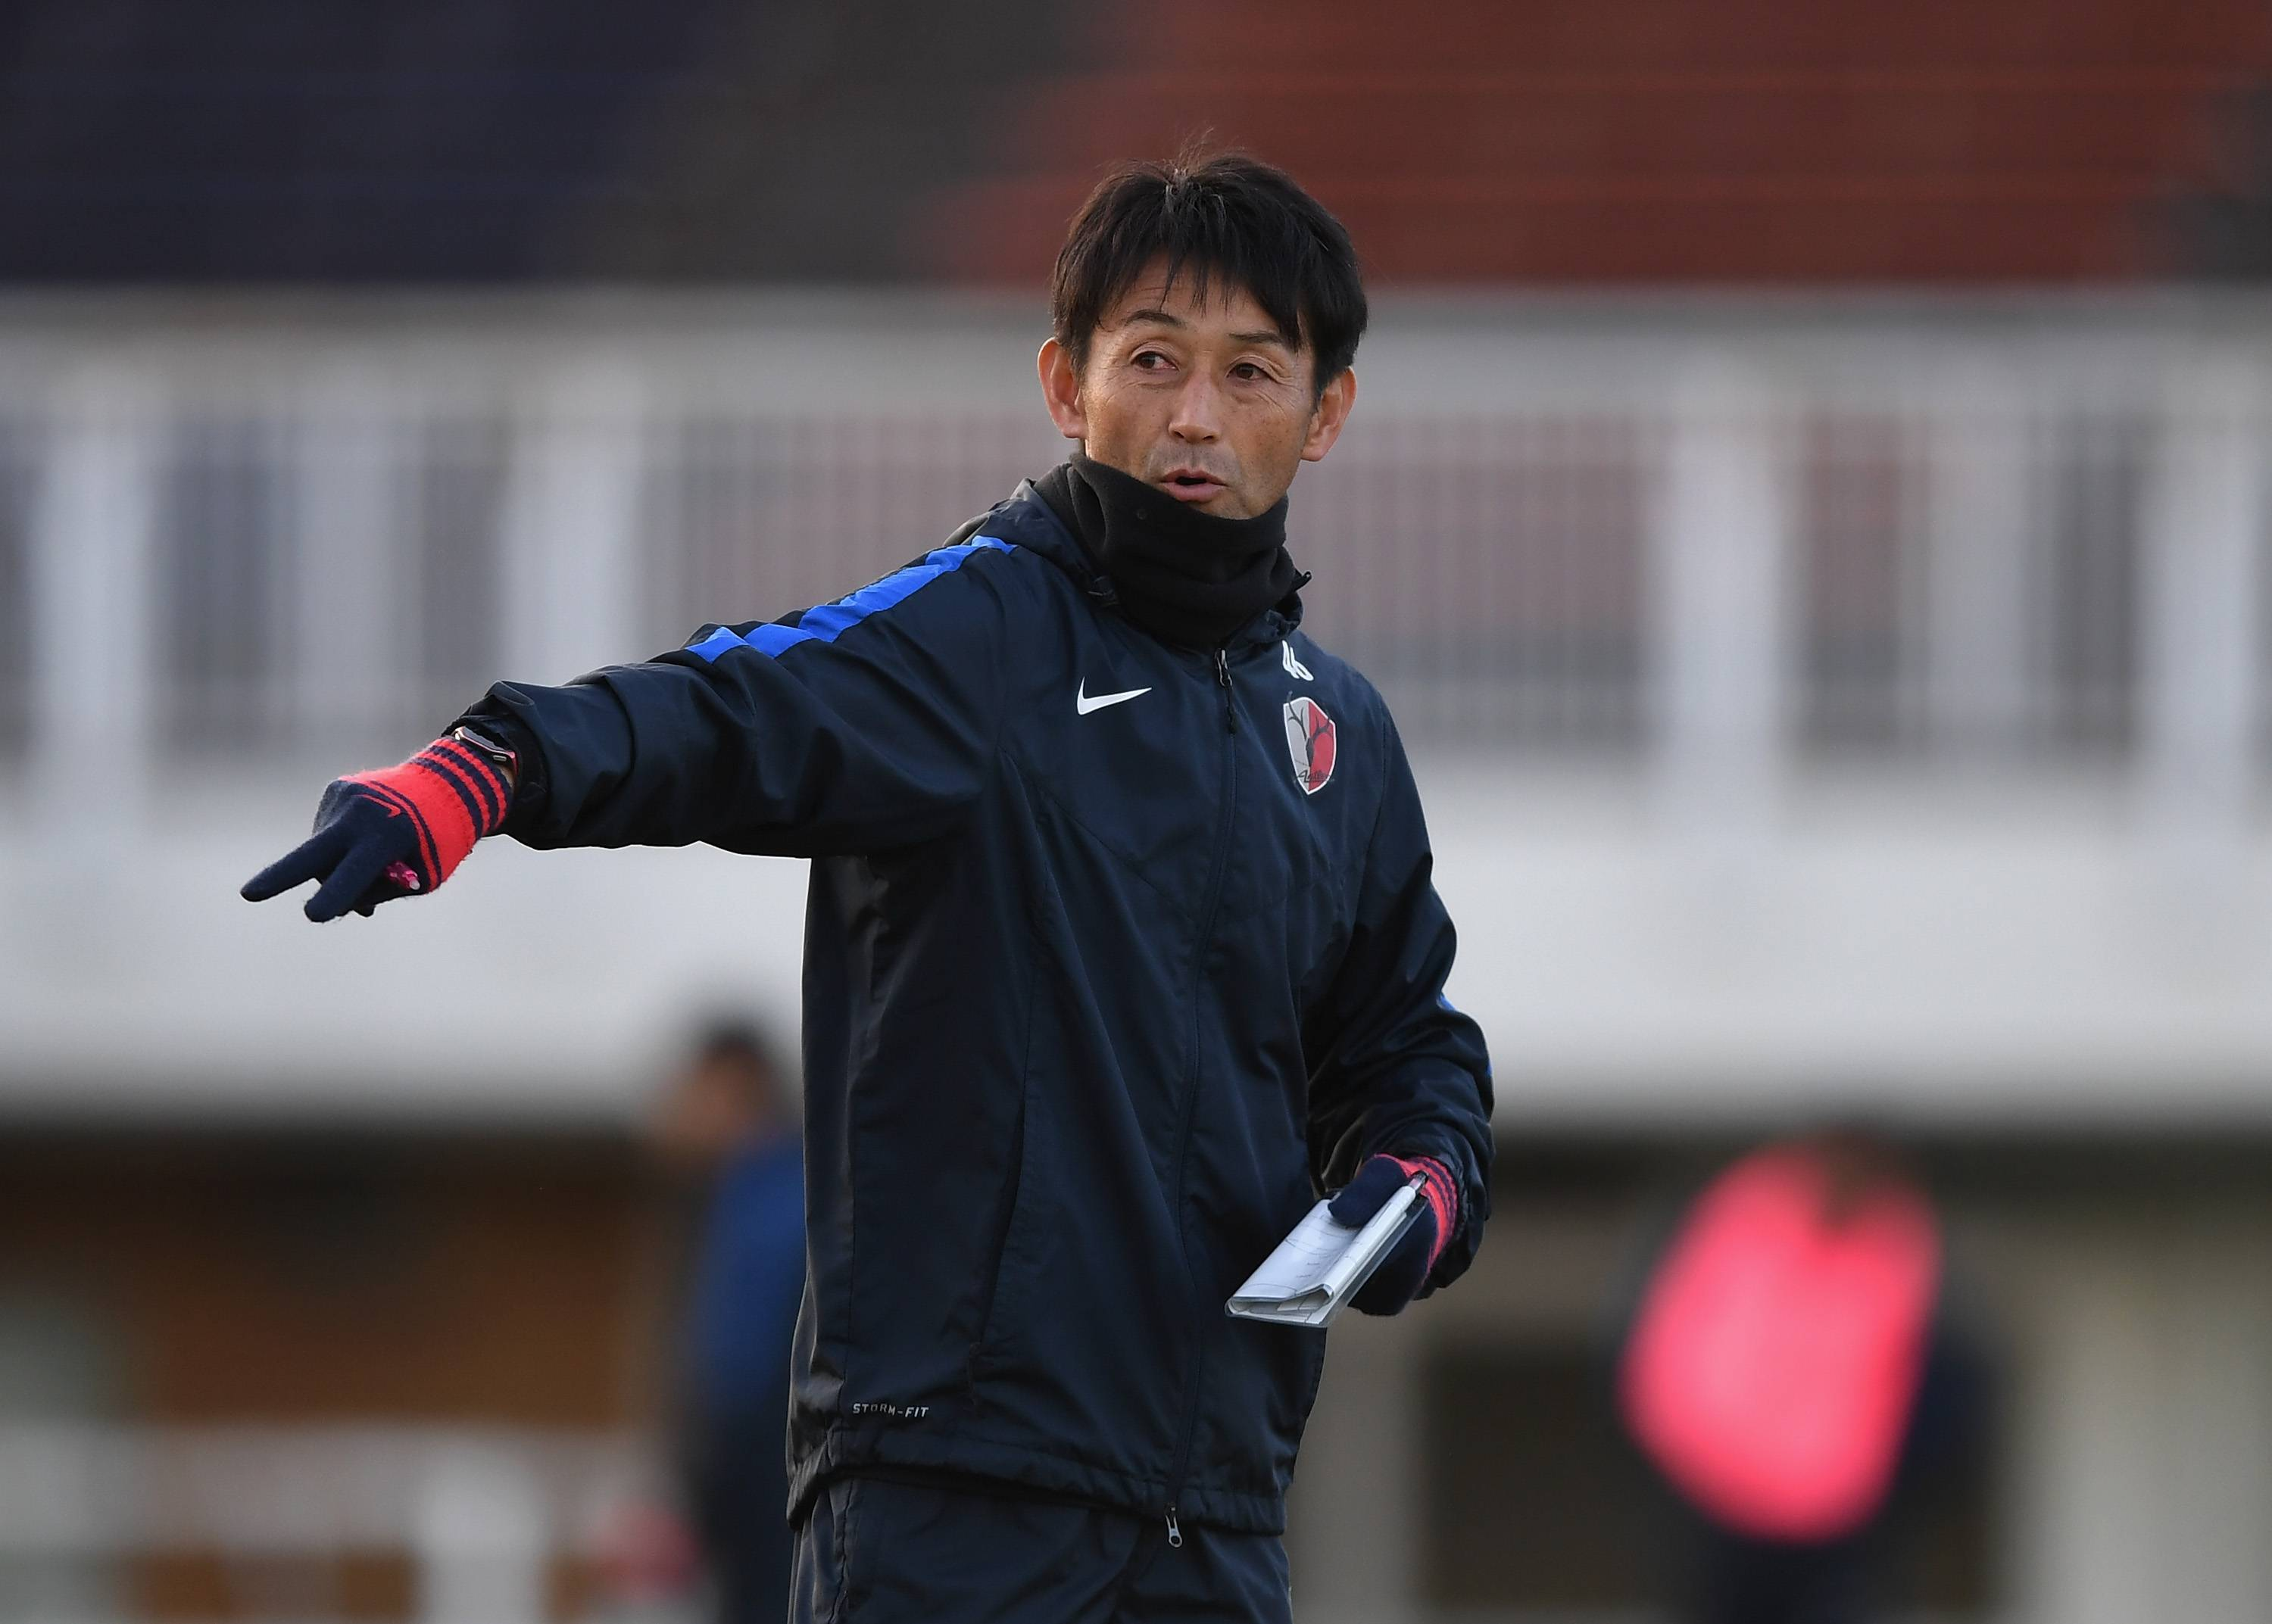 Kashima Antlers manager Ishii sacked after ACL exit